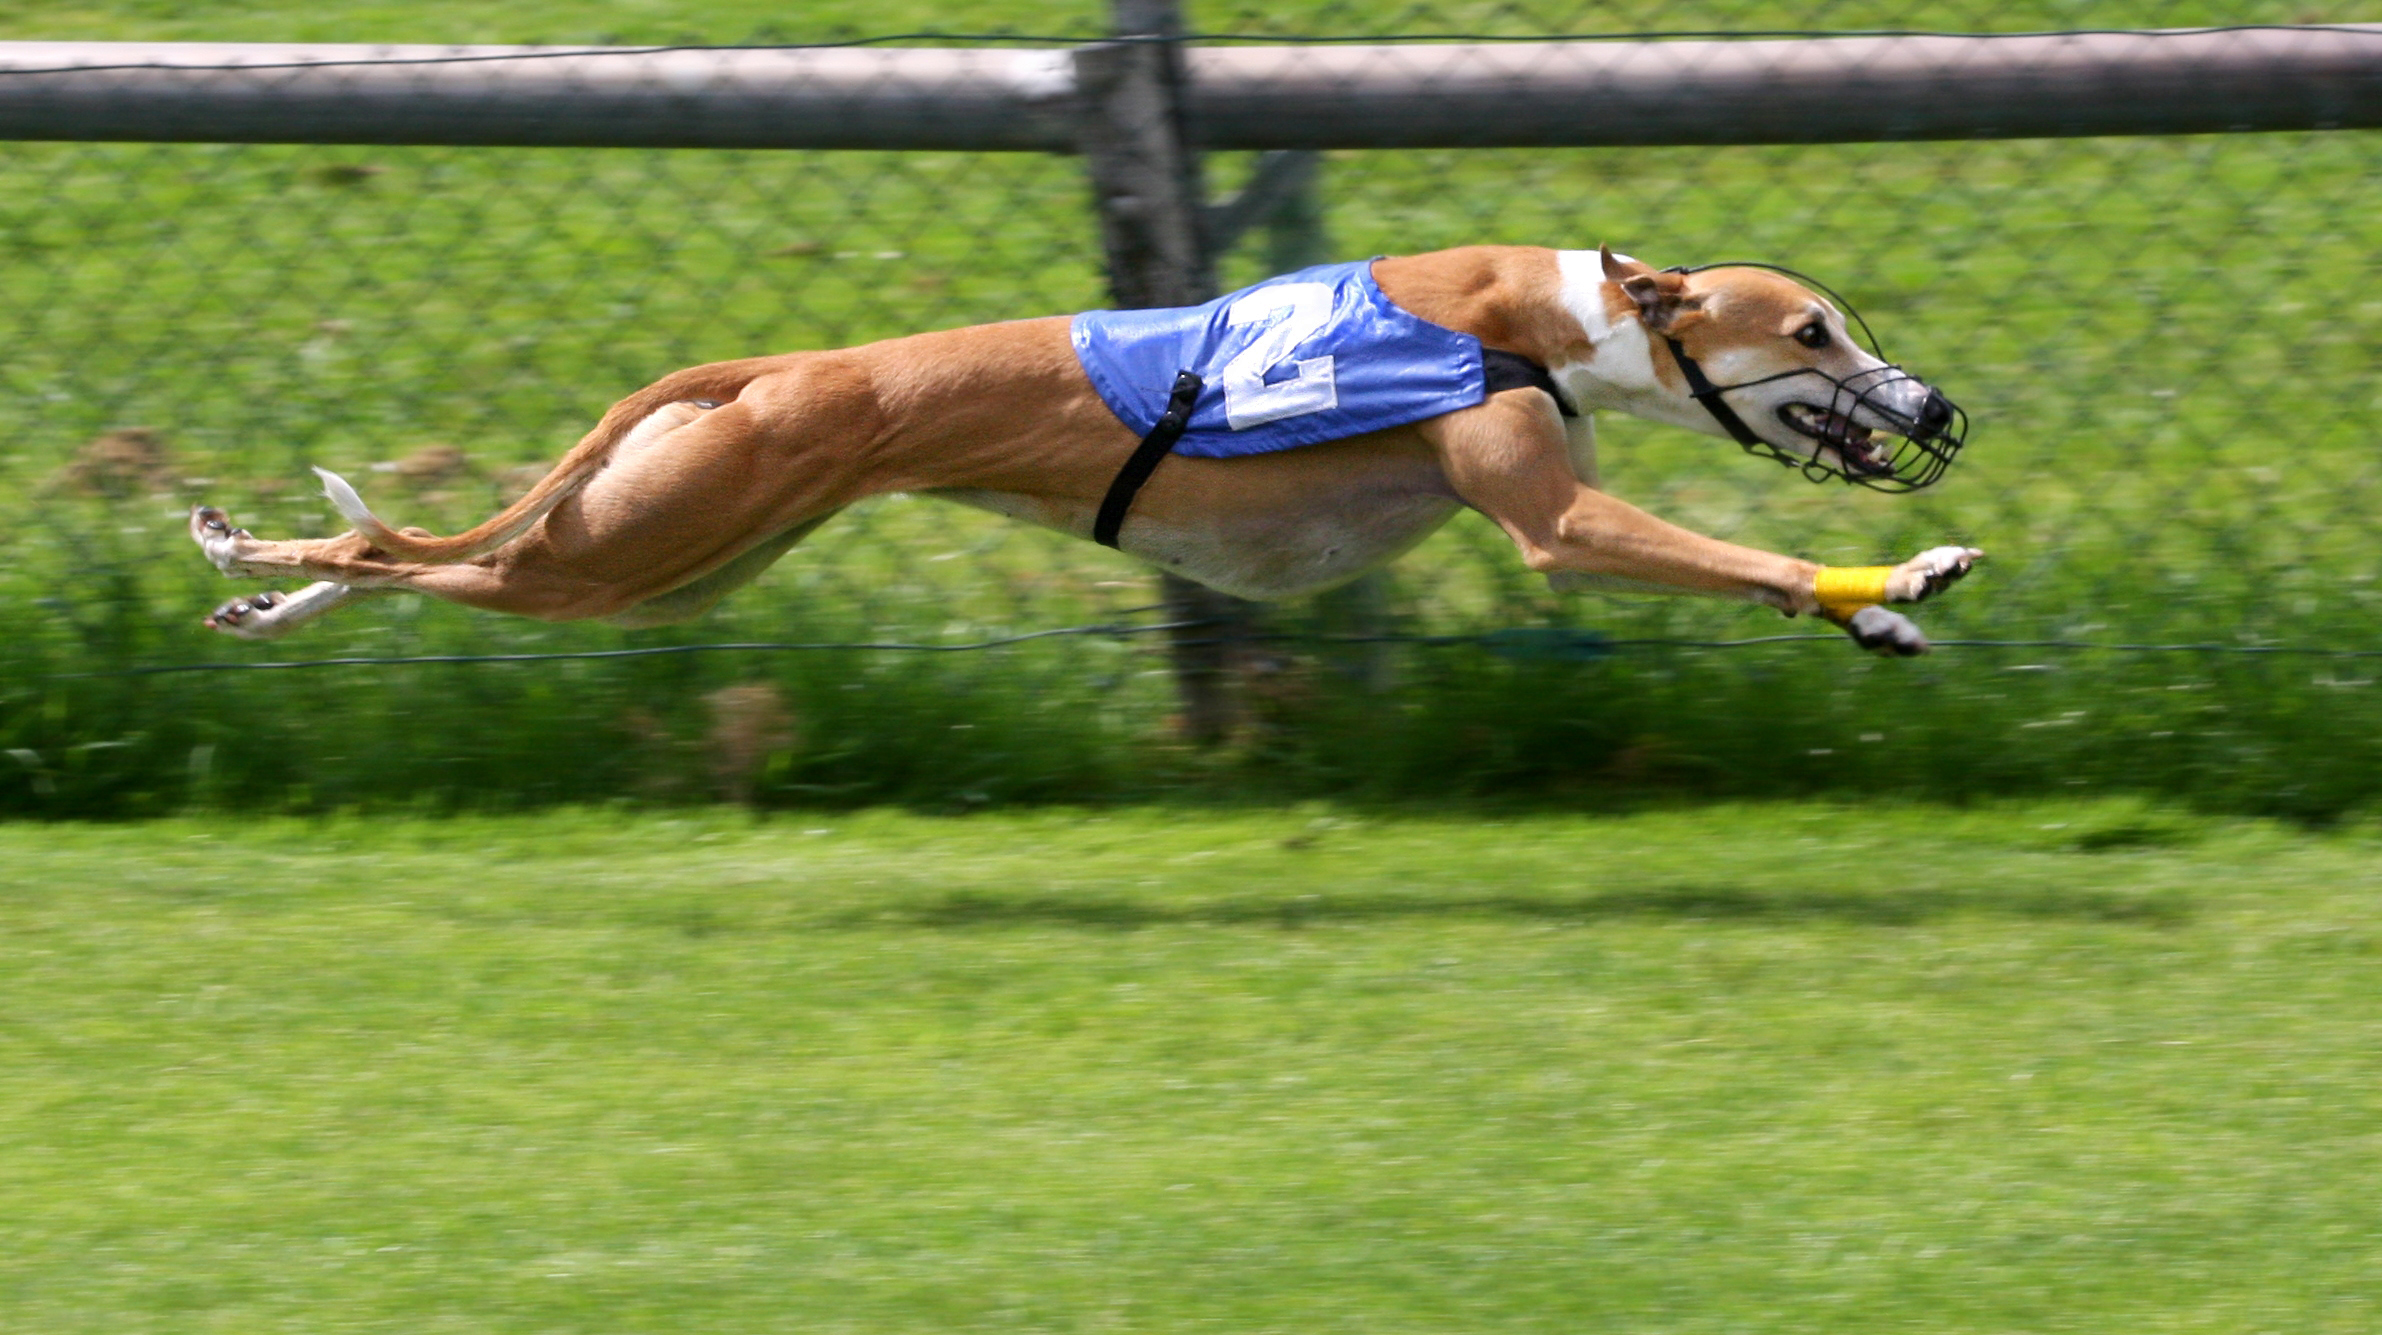 File:Greyhound Racing 2 amk.jpg  Wikipedia